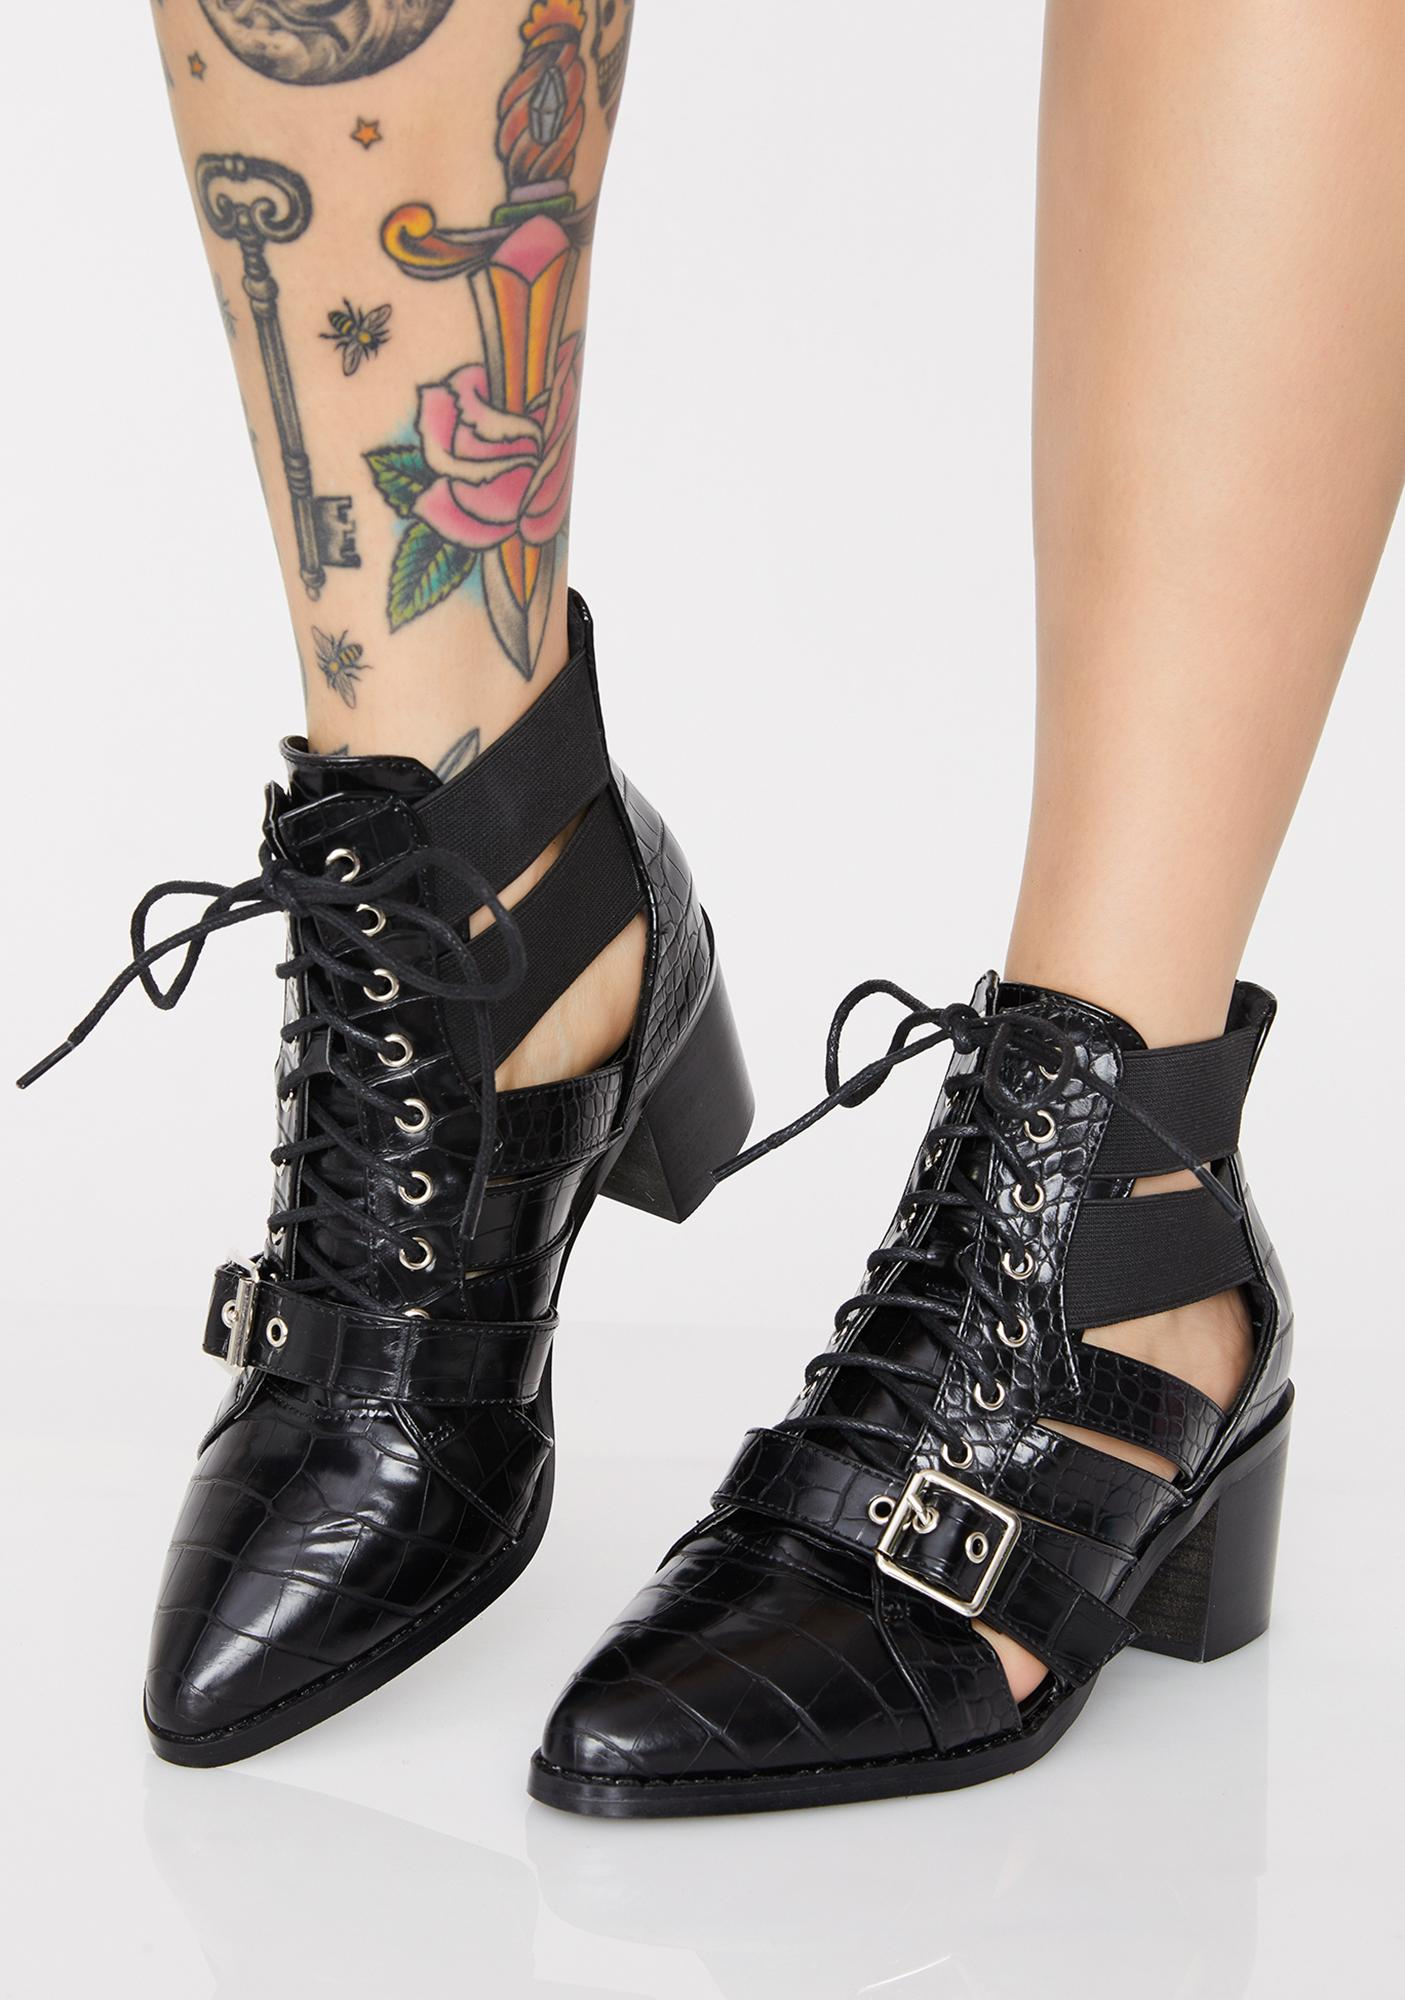 Wanderlustin' Cut Out Boots